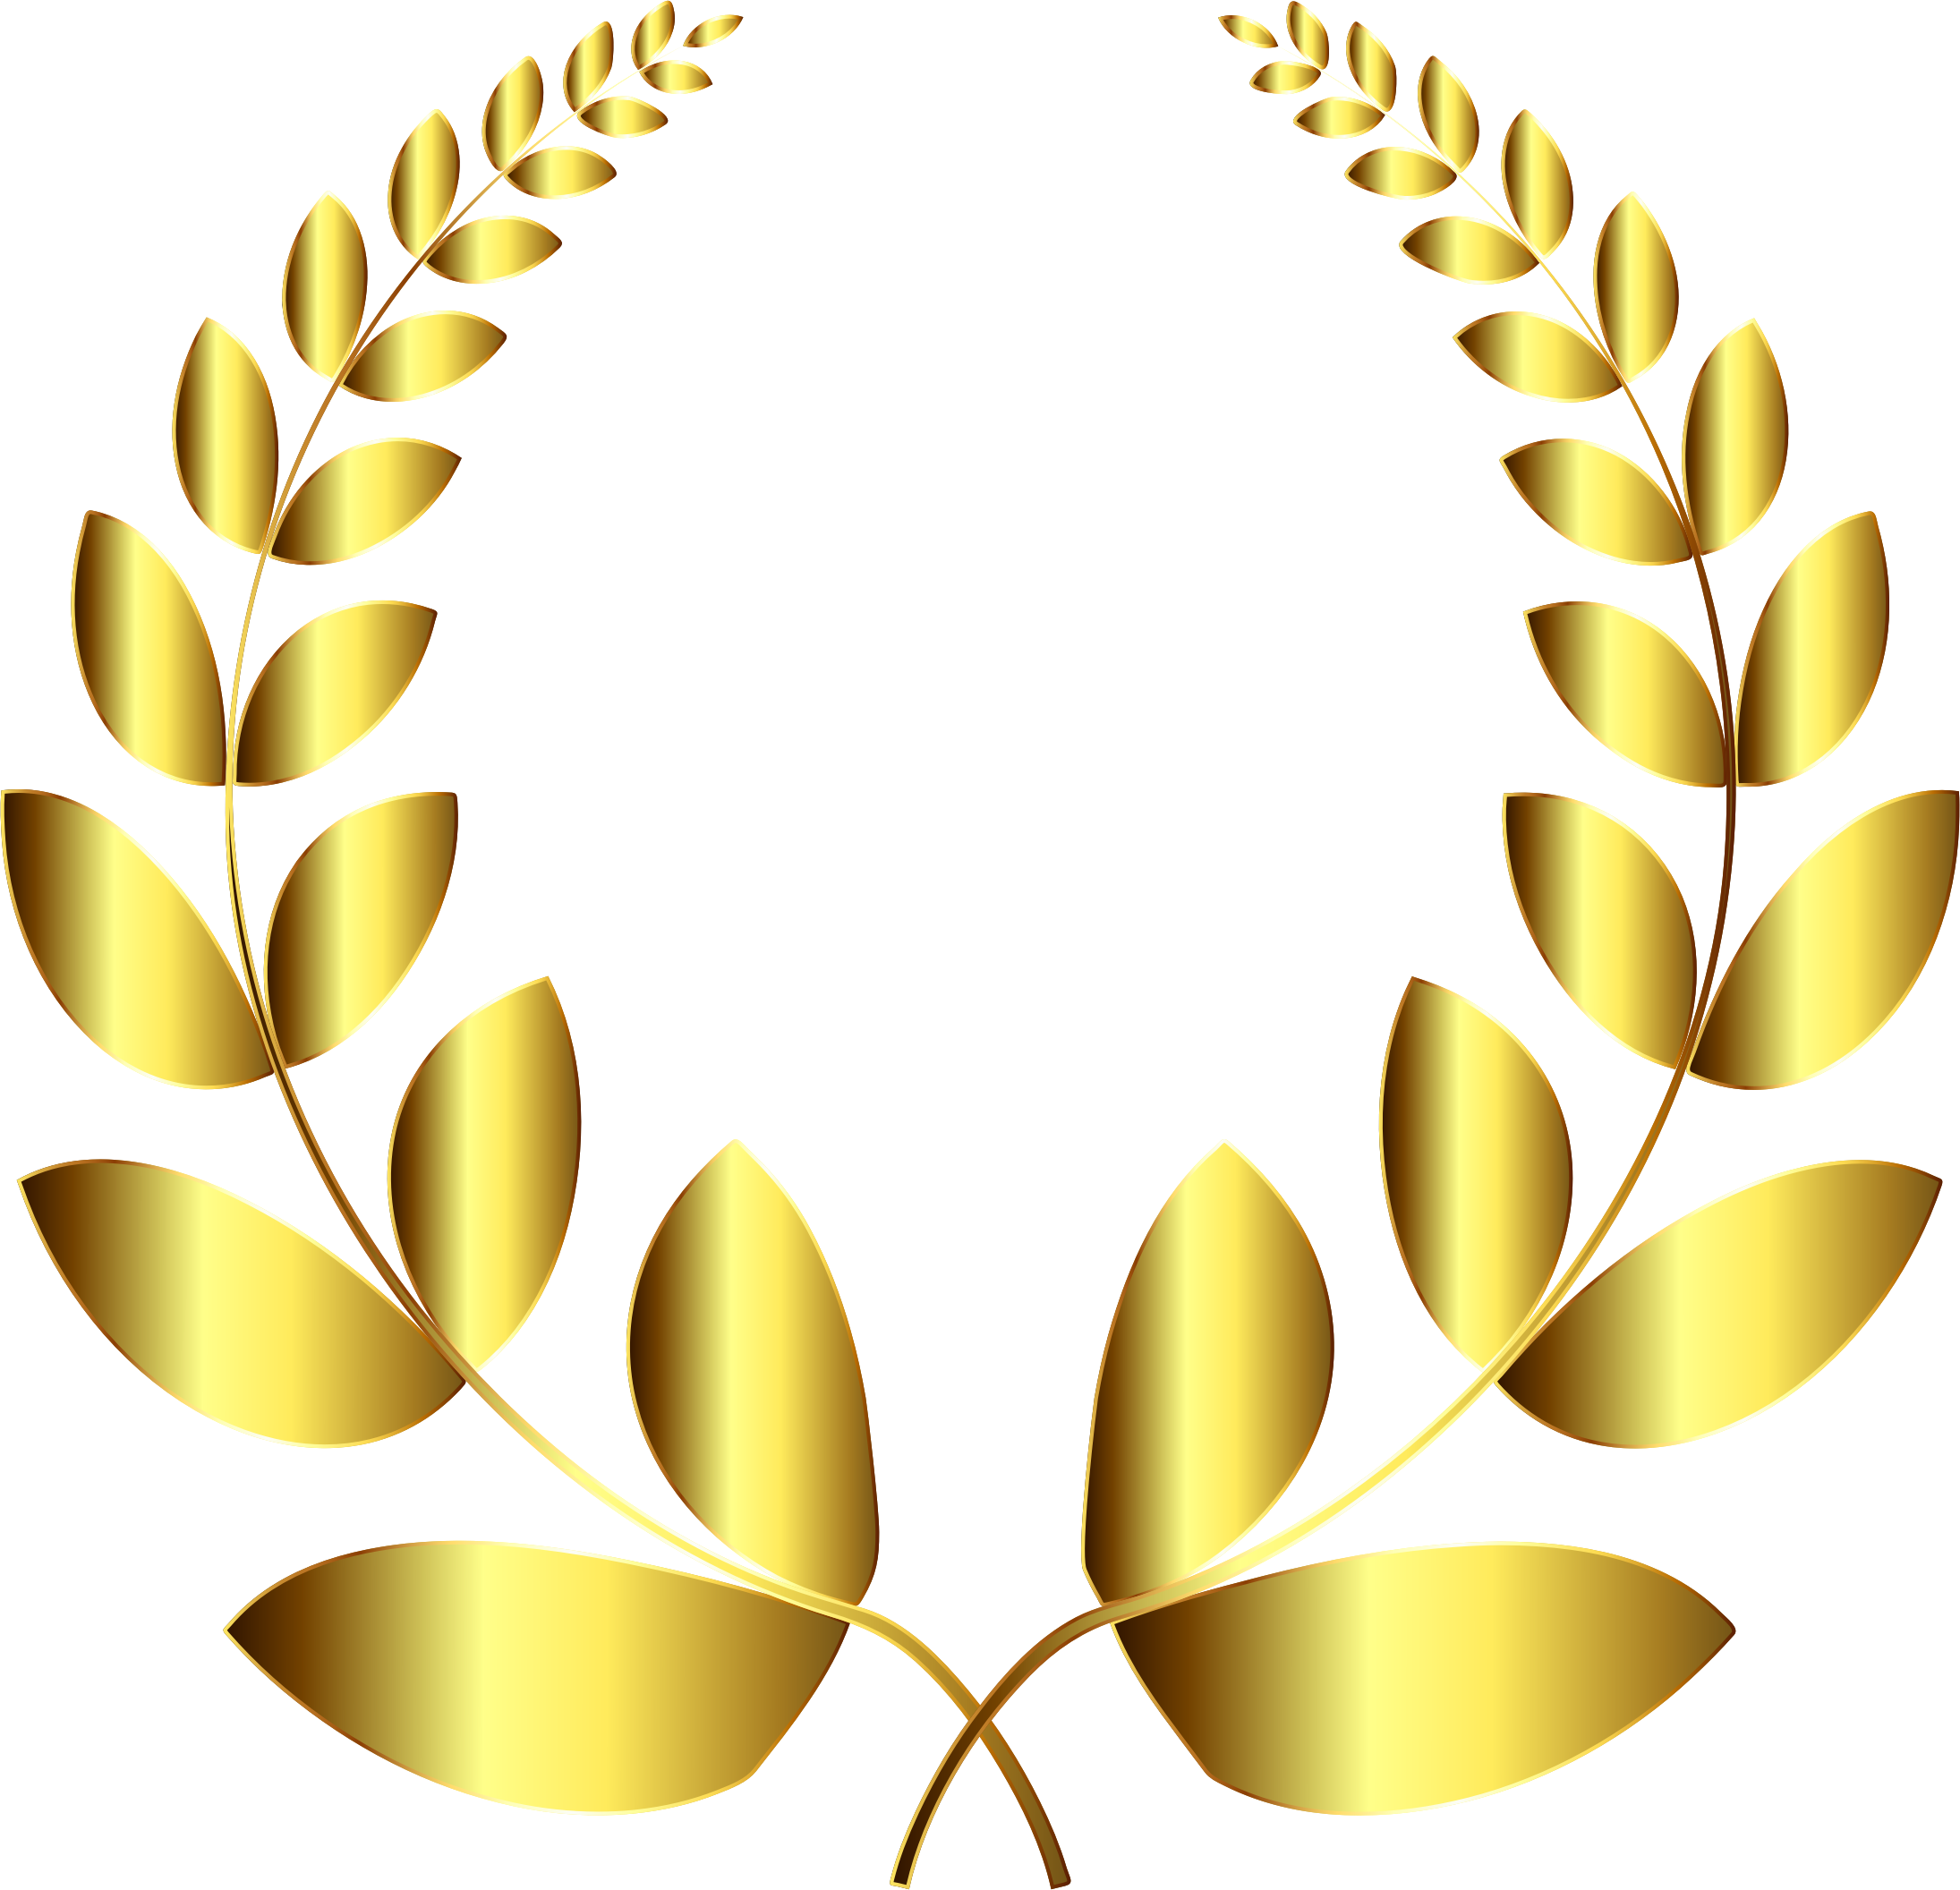 Gold laurel png. Wreath no background icons